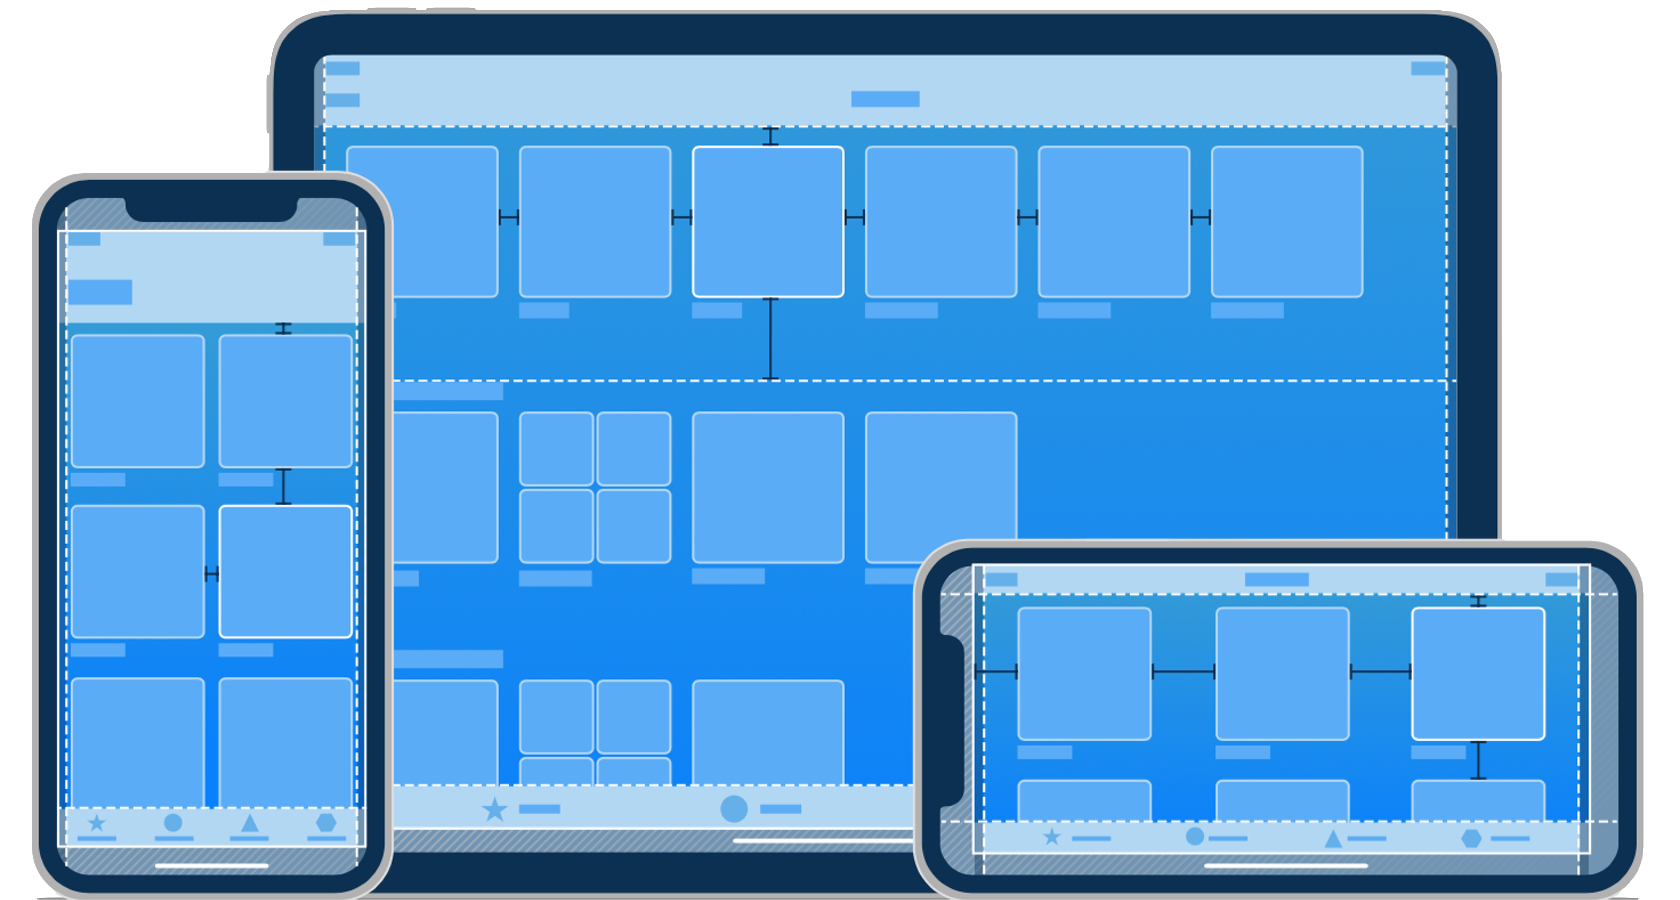 Human Interface Guidelines for mobile design.